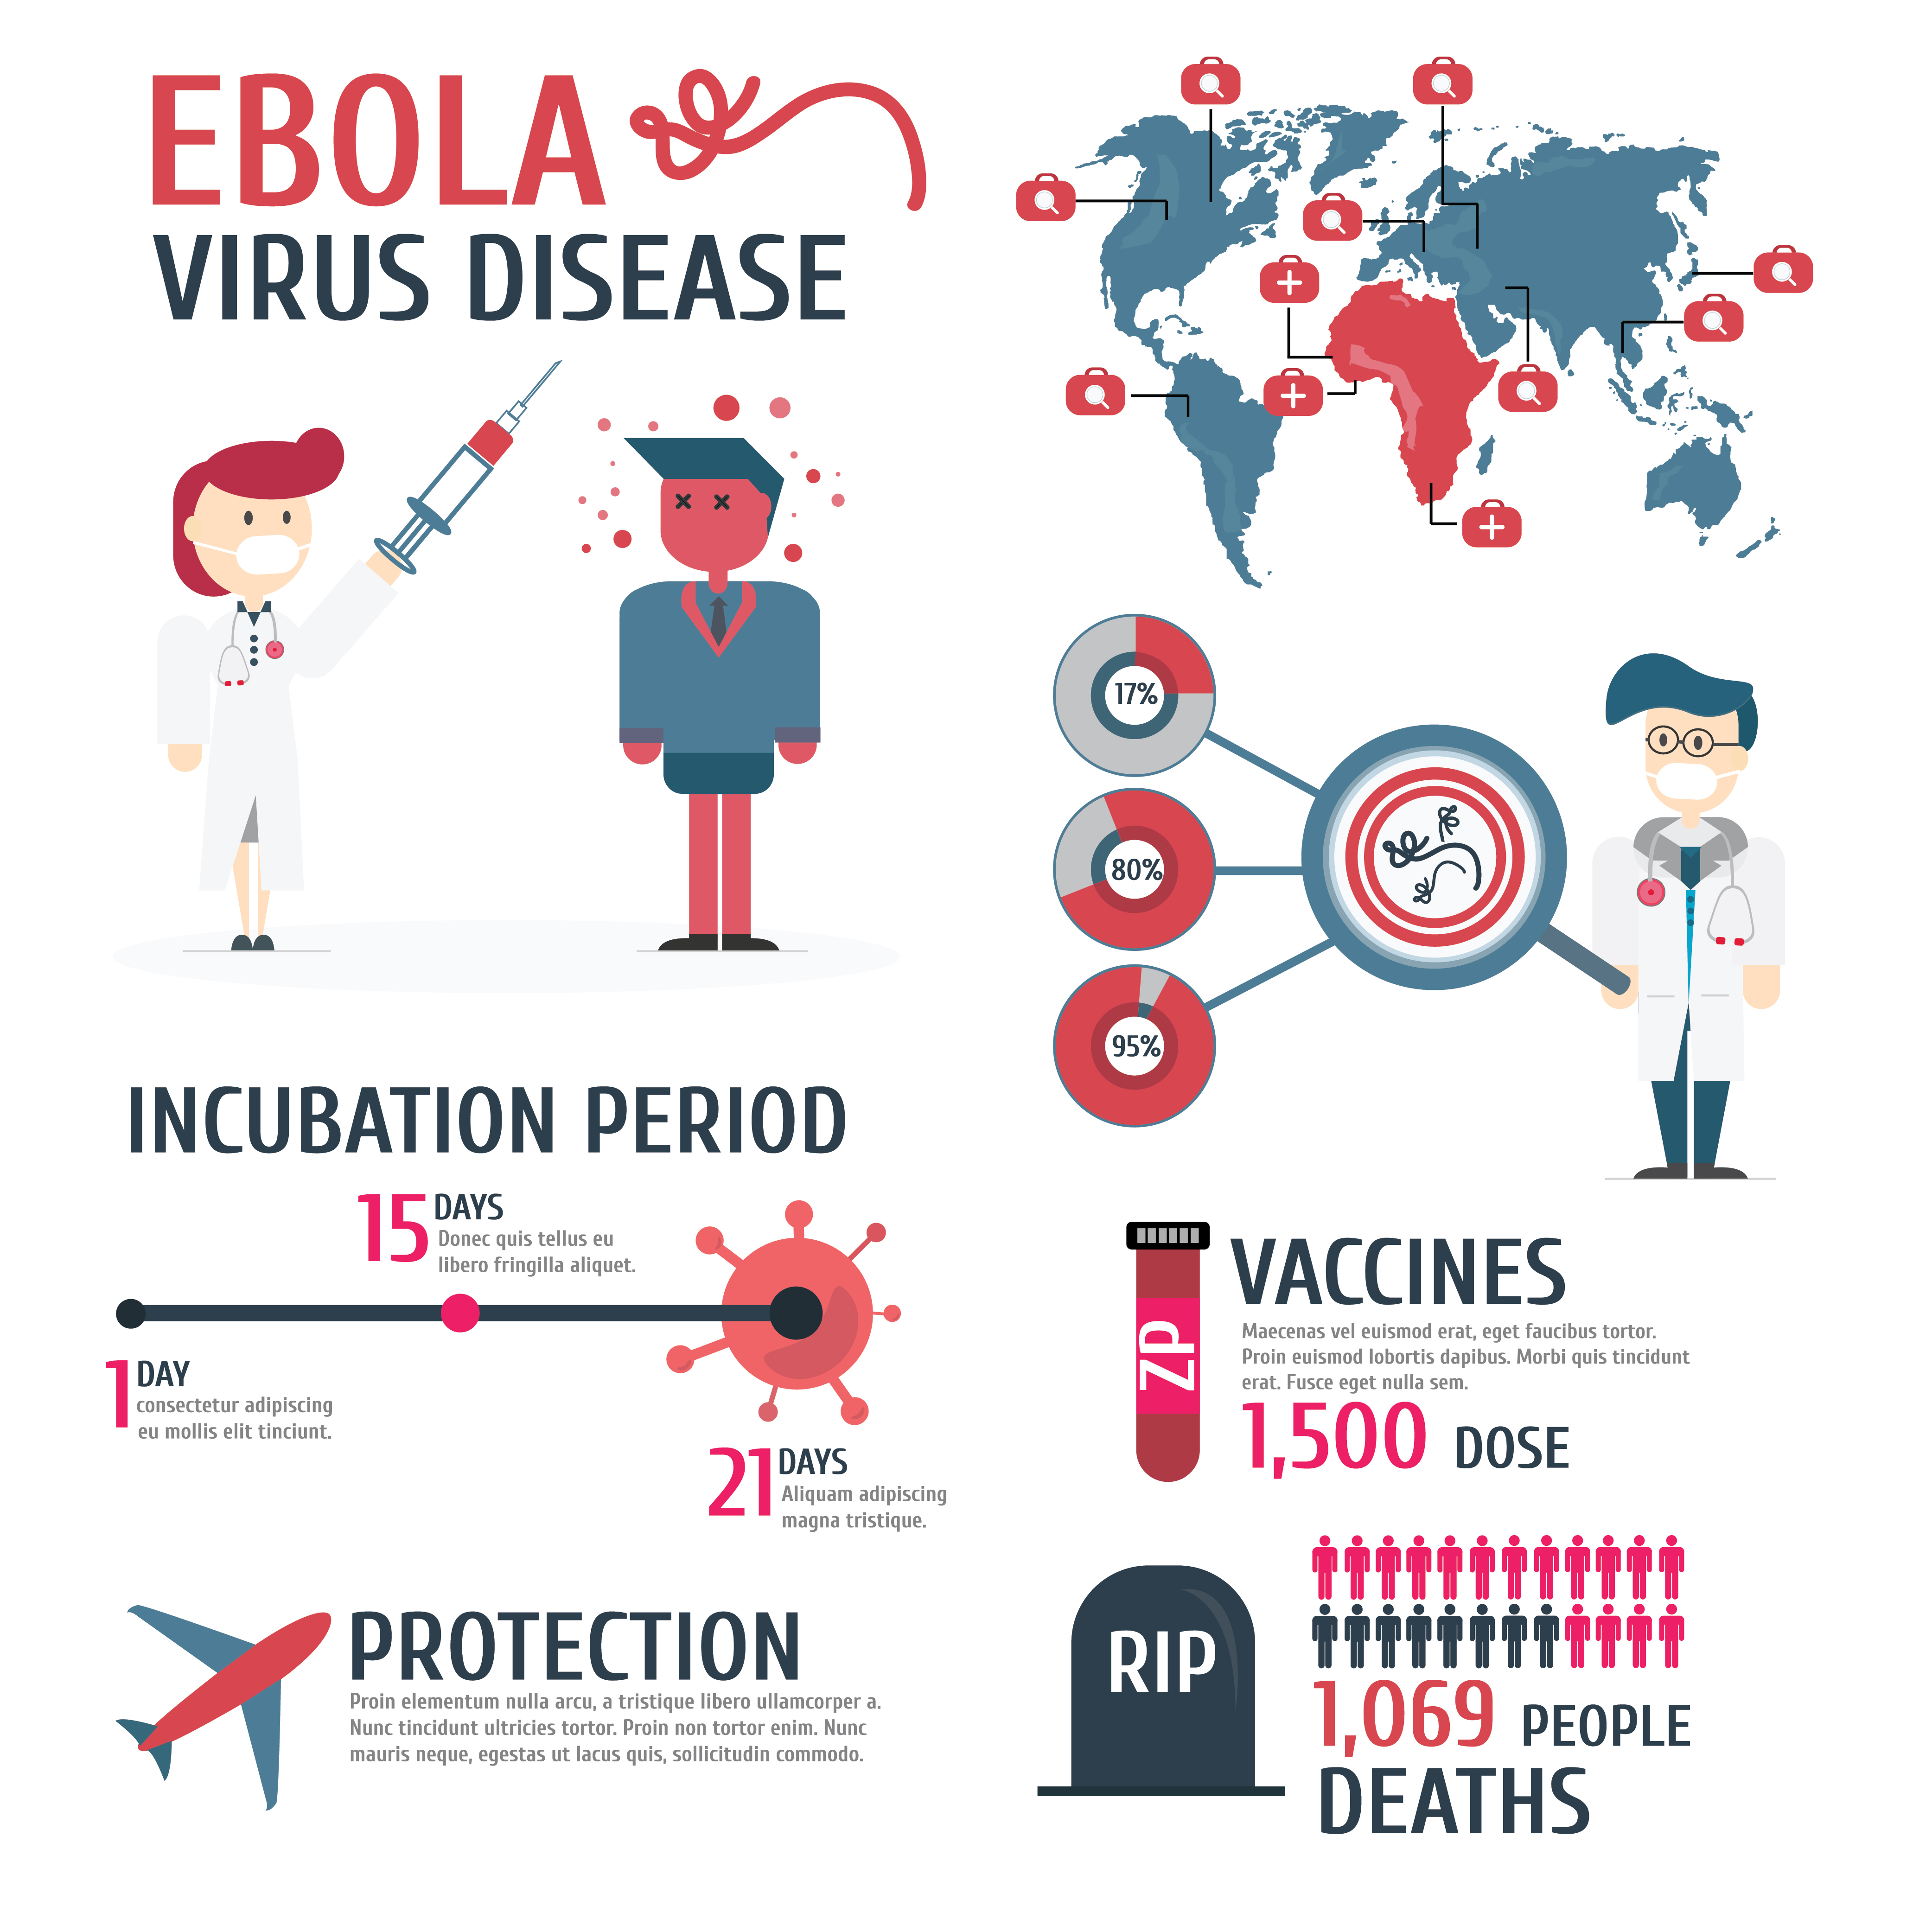 Ebola-Disease-Treatment-AllDayChemist-Health-Blog